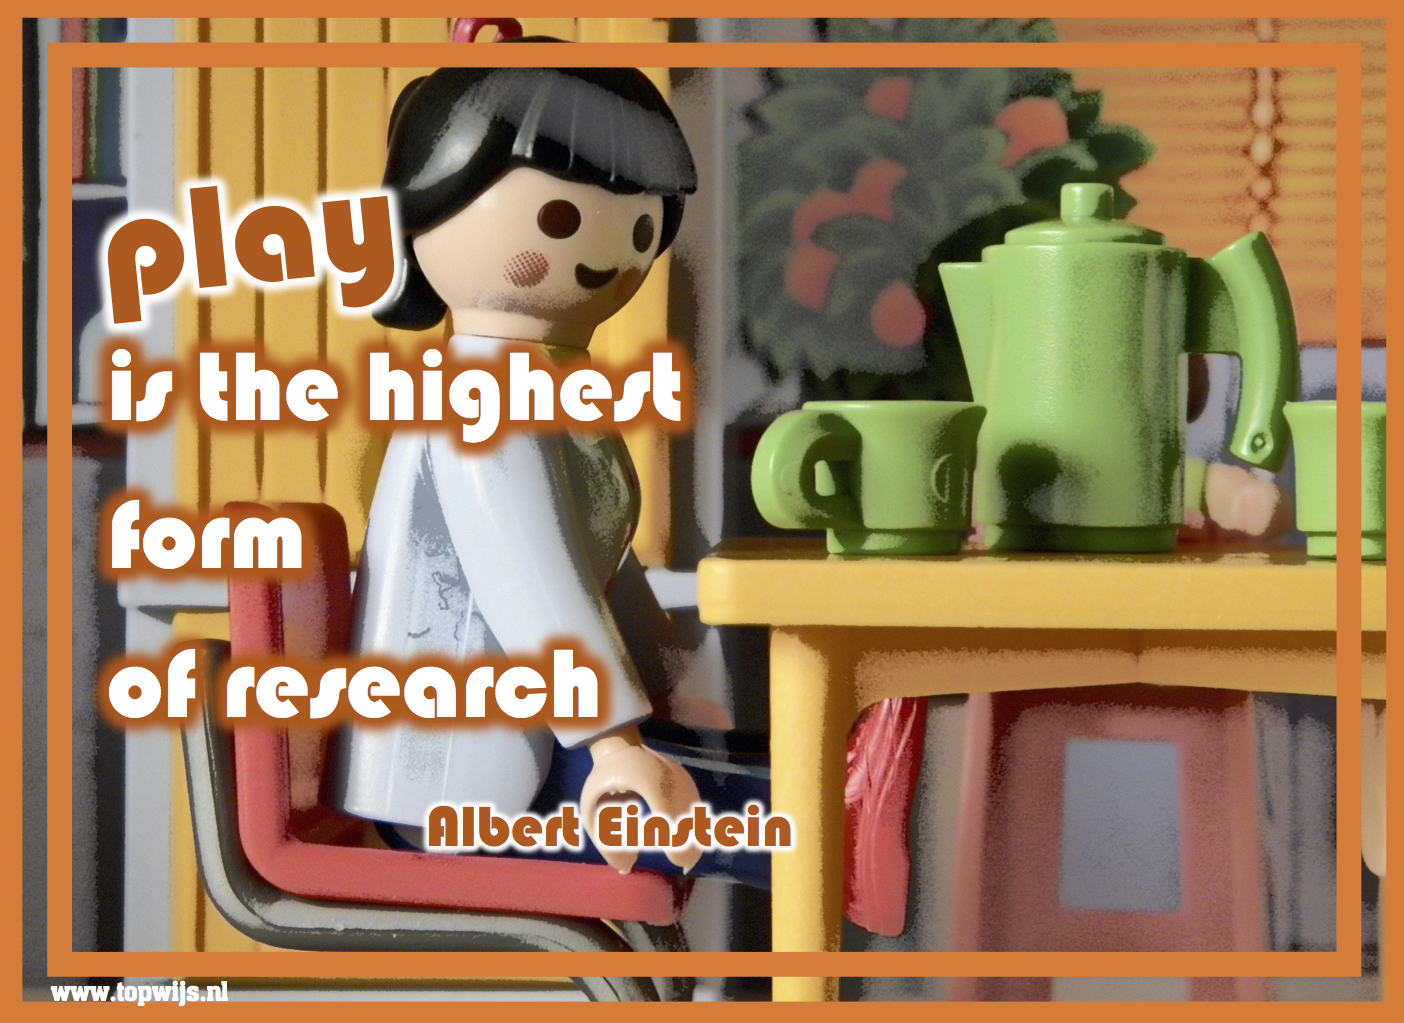 Einstein: Play is the highest form of research